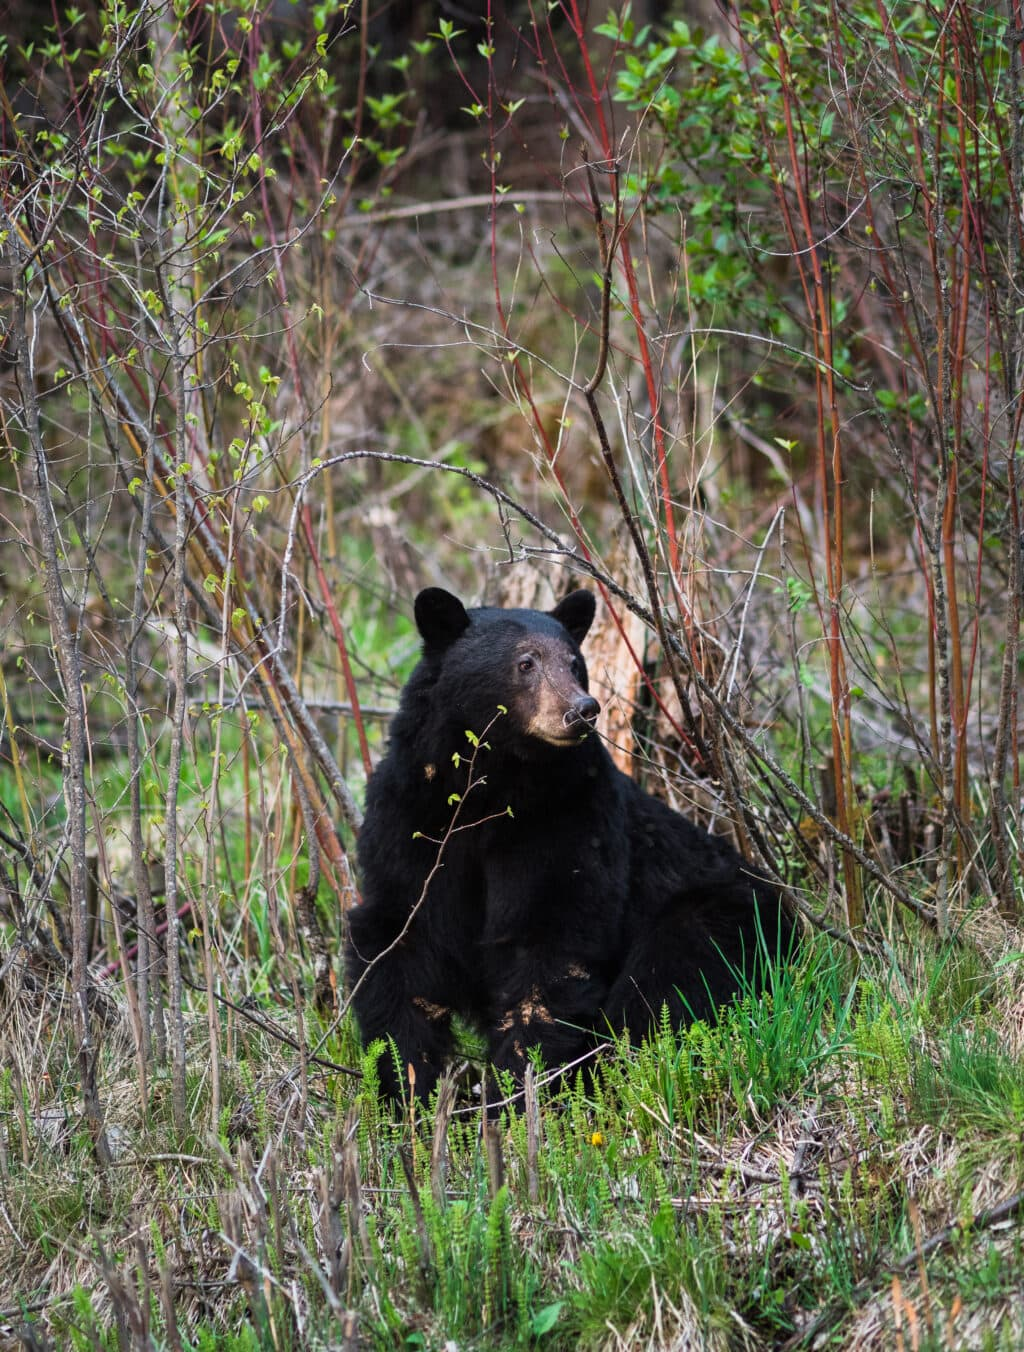 A black bear sits in some greenery